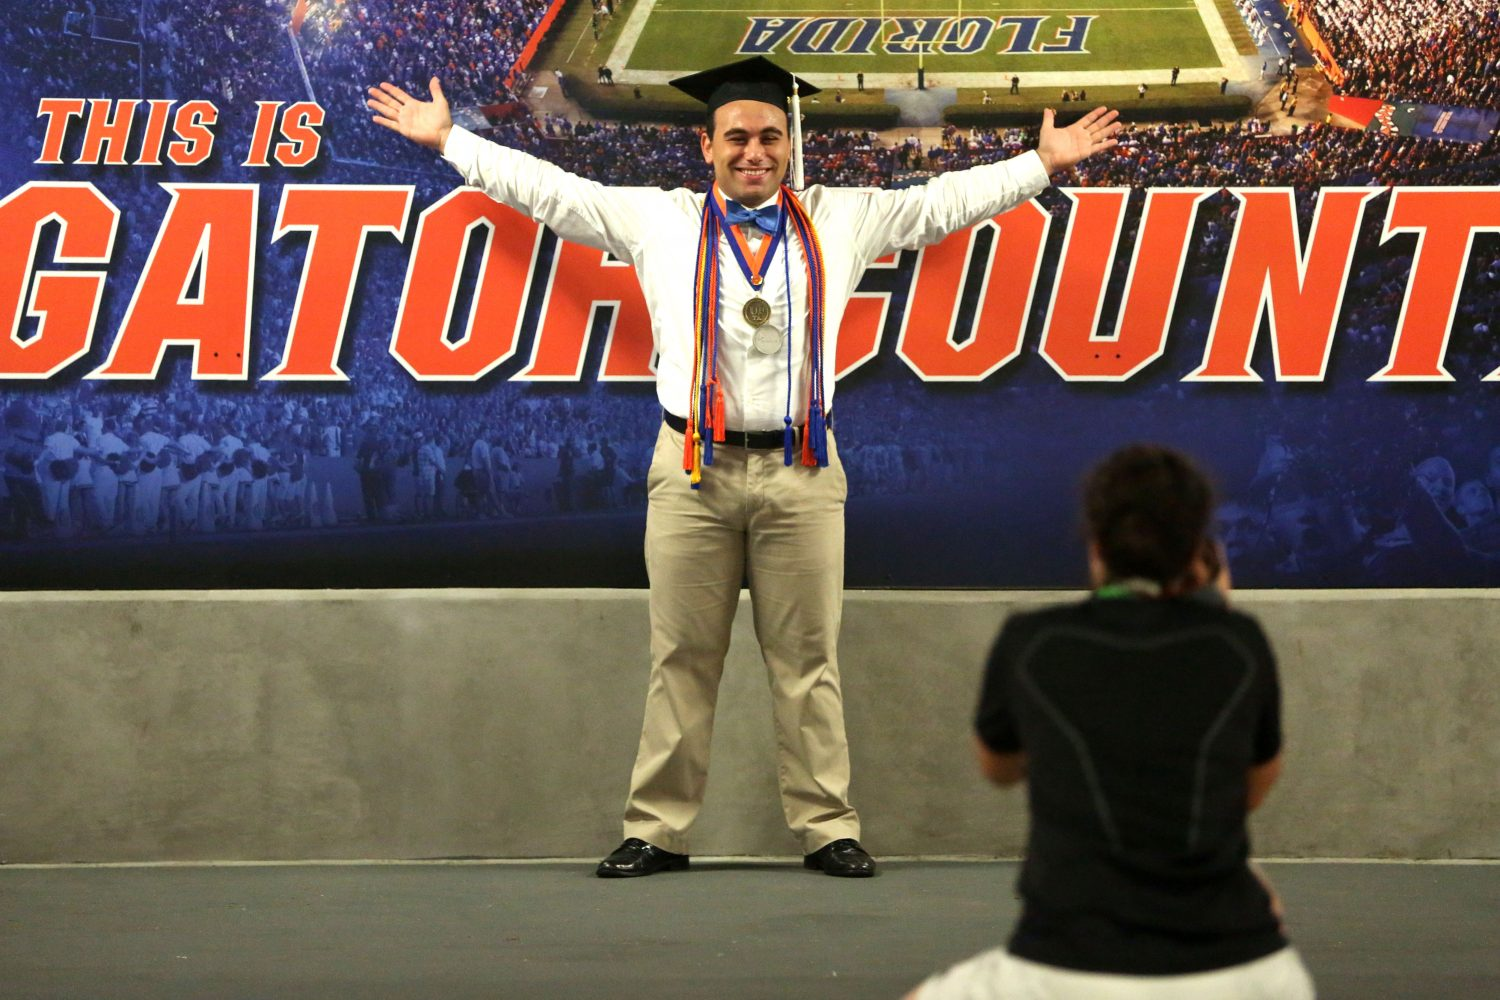 Greg Cohen, 22, poses for photographer Katie Sastre, 20, for his graduation shoot at Ben Hill Griffin Stadium at the University of Florida on Thursday, May 1, 2014, in Gainesville, Fla. Cohen will graduate with a B.A. in economics.